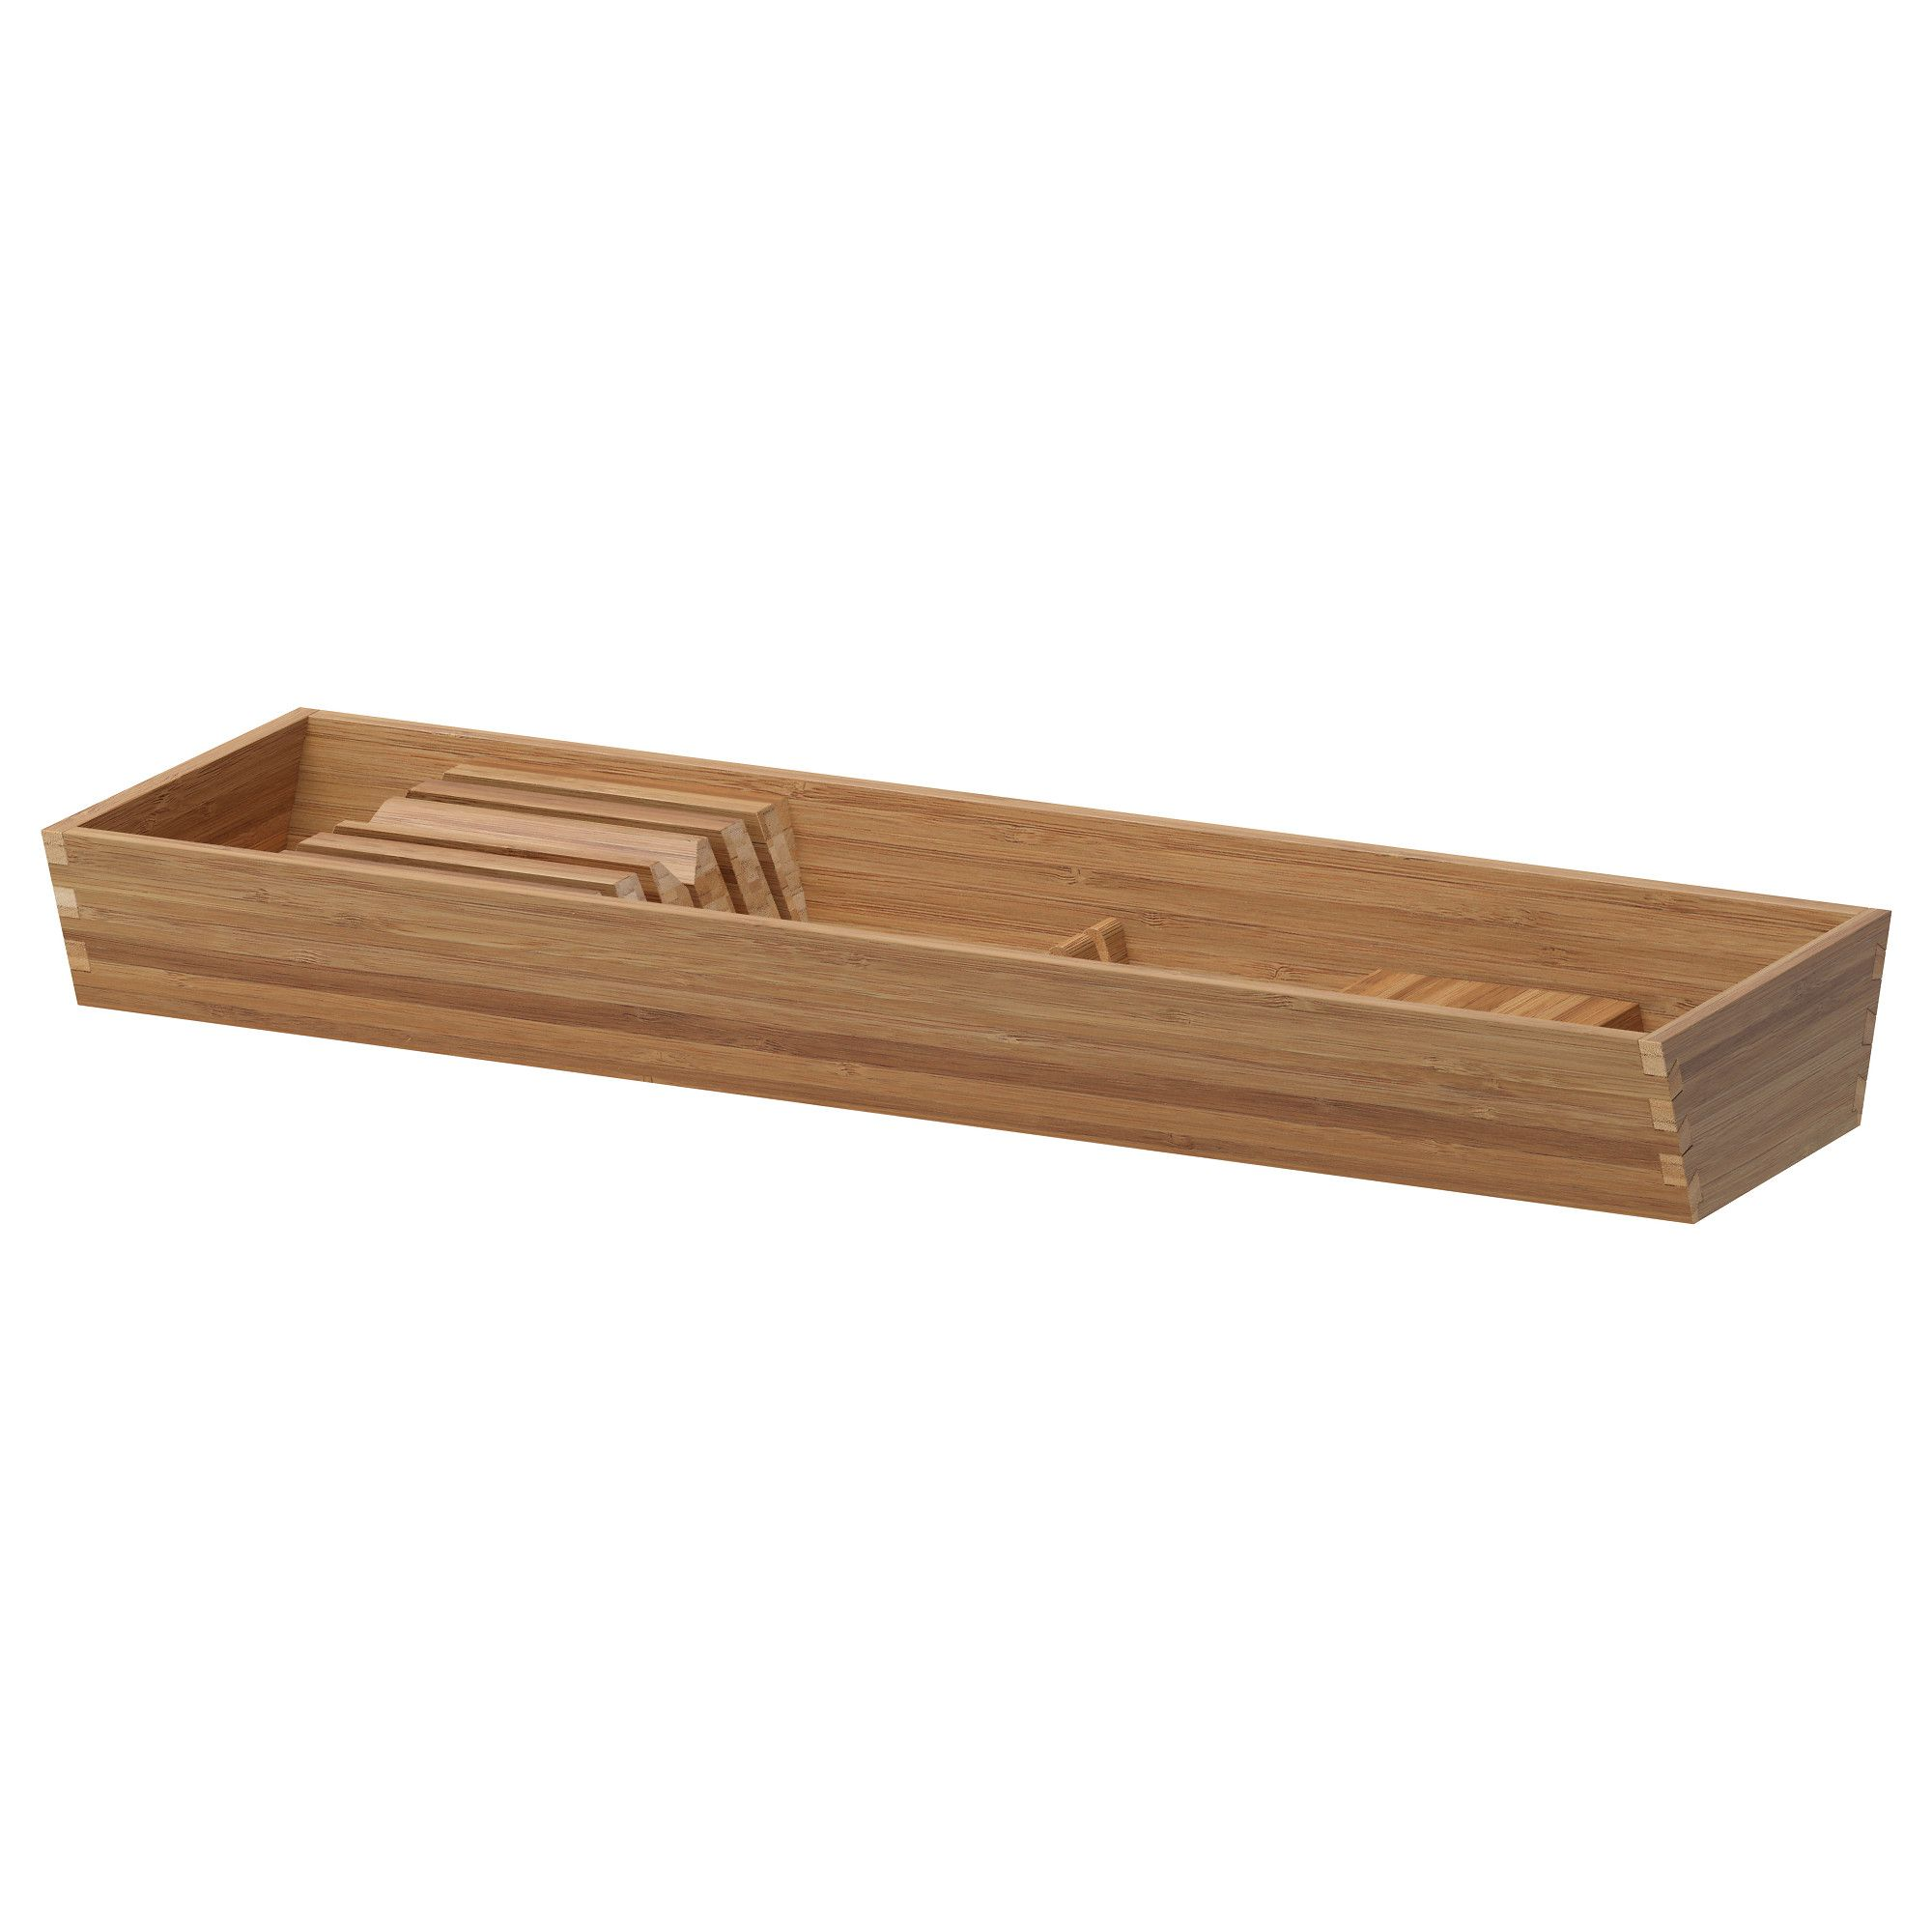 VARIERA Knife tray, bamboo | Trays, Knives and Solid wood